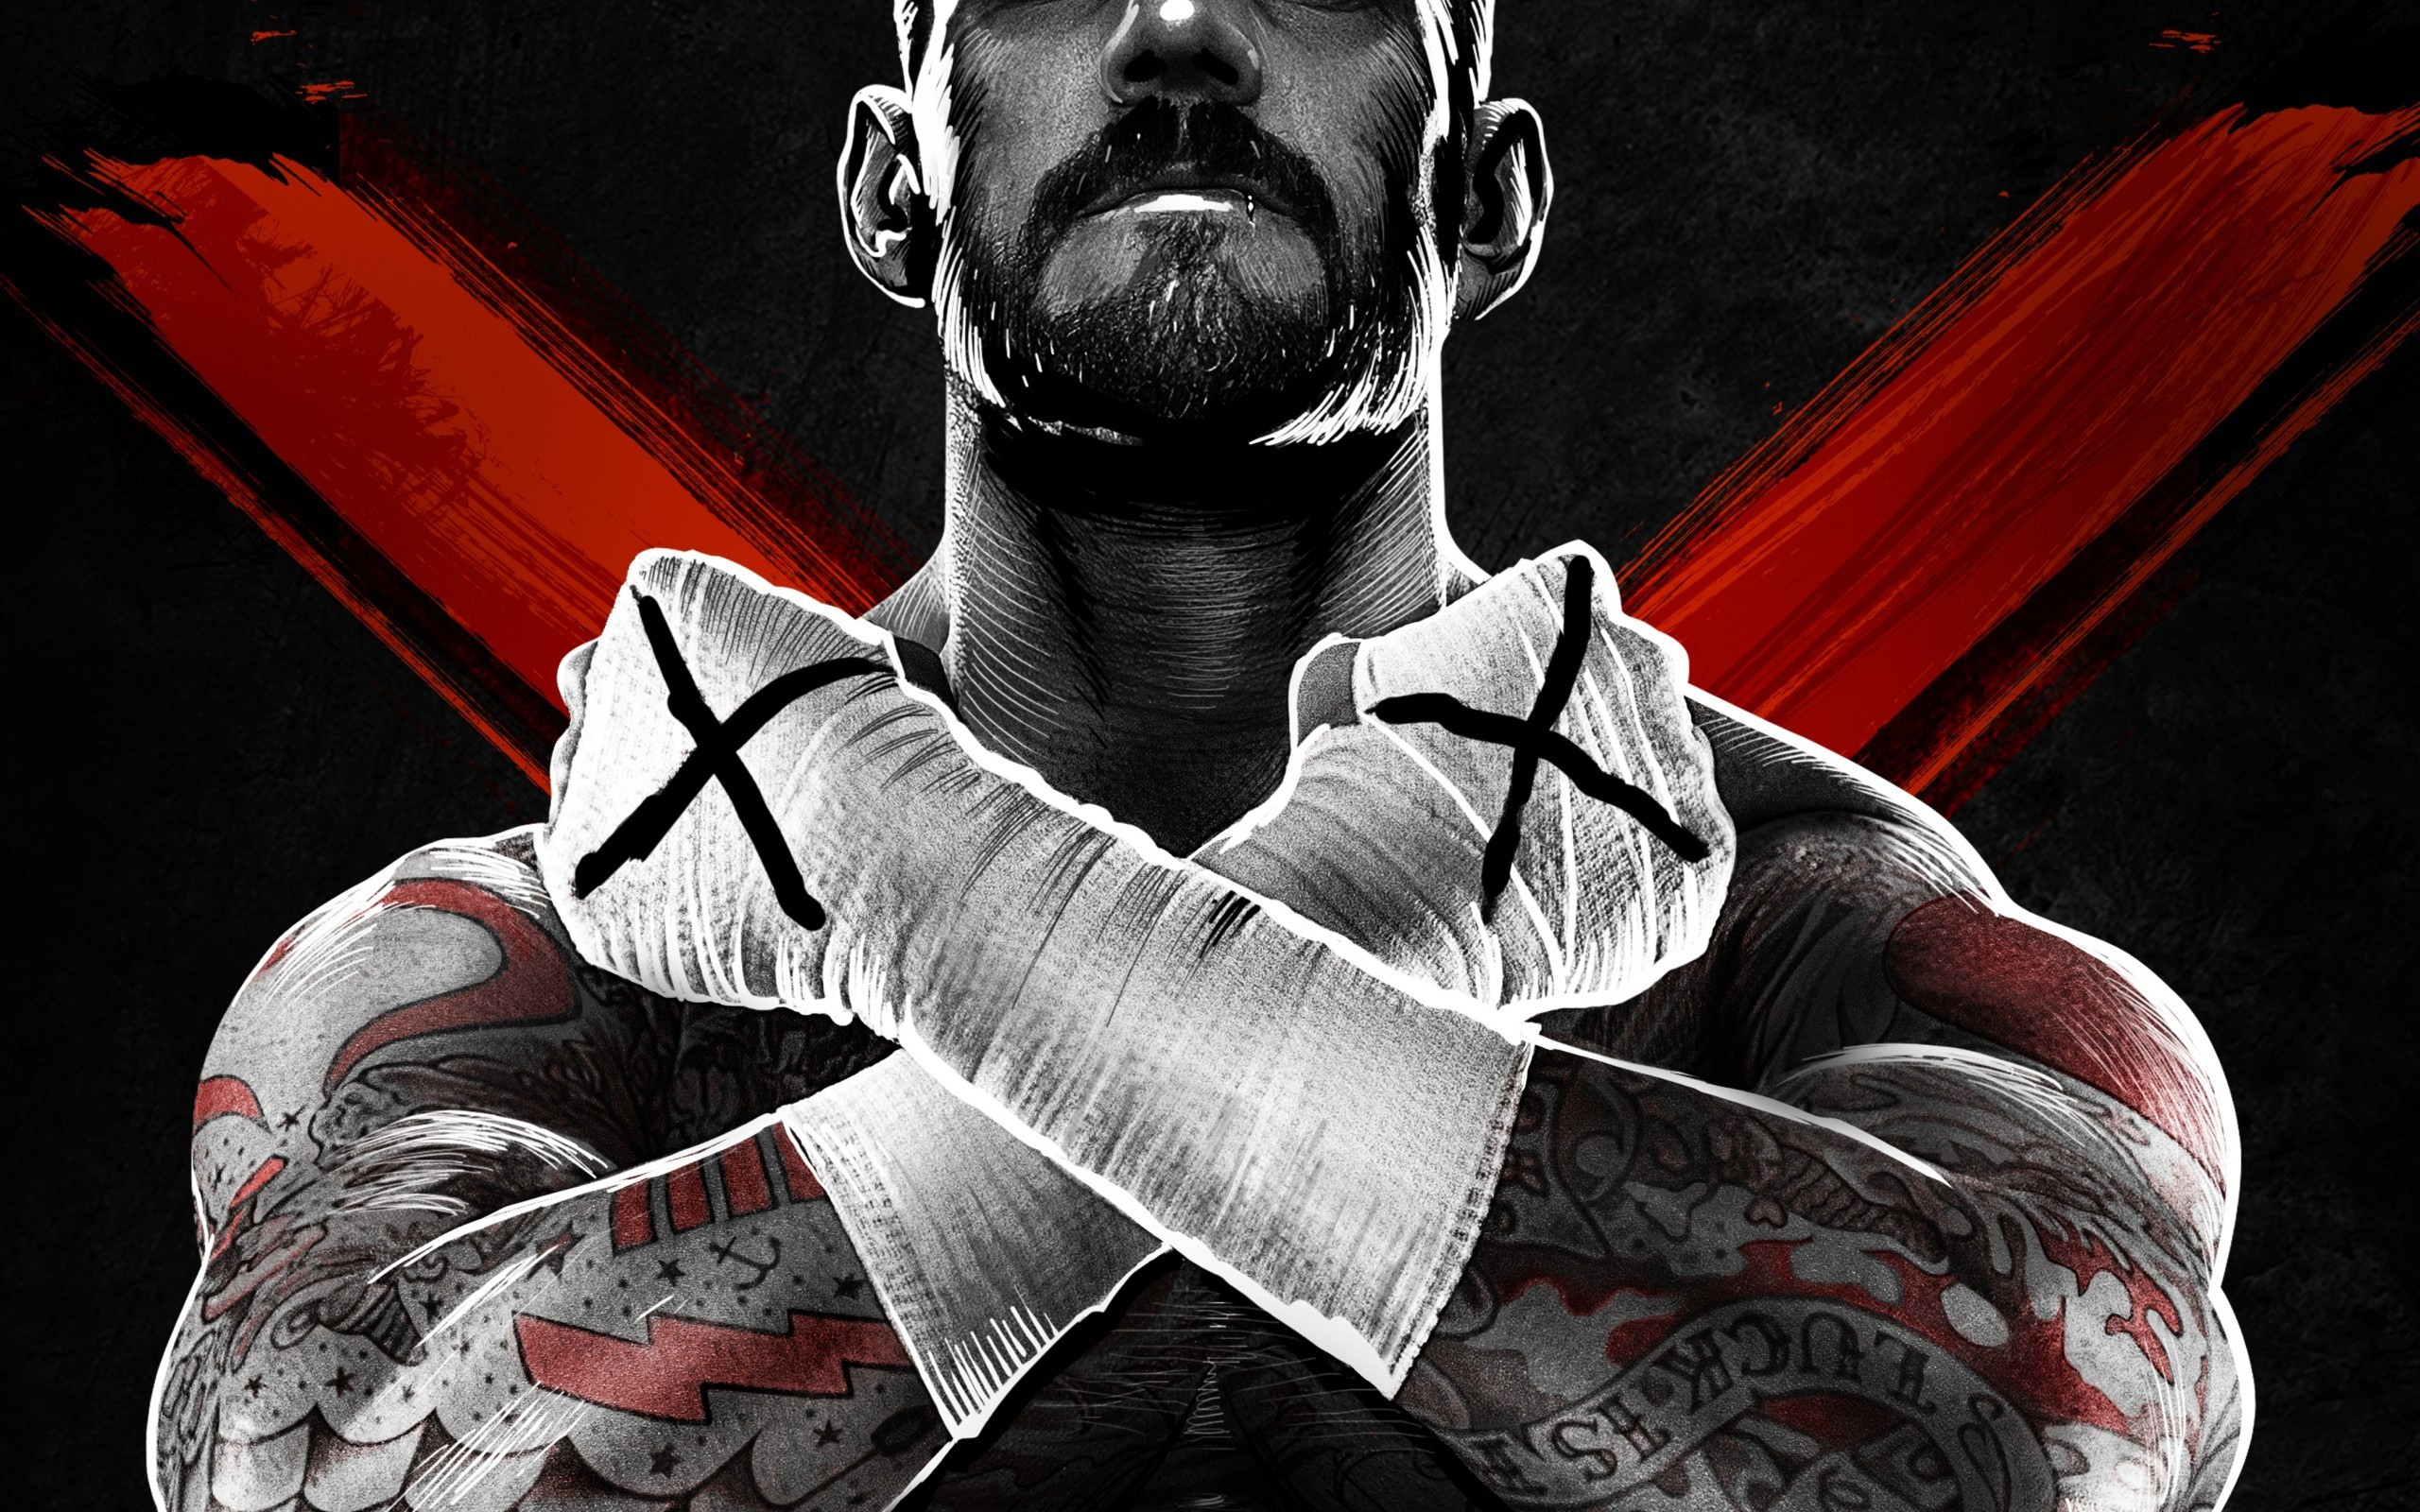 Res: 2560x1600, ... Full HD Boxing Wallpaper   GsFDcY.com HD Quality ...